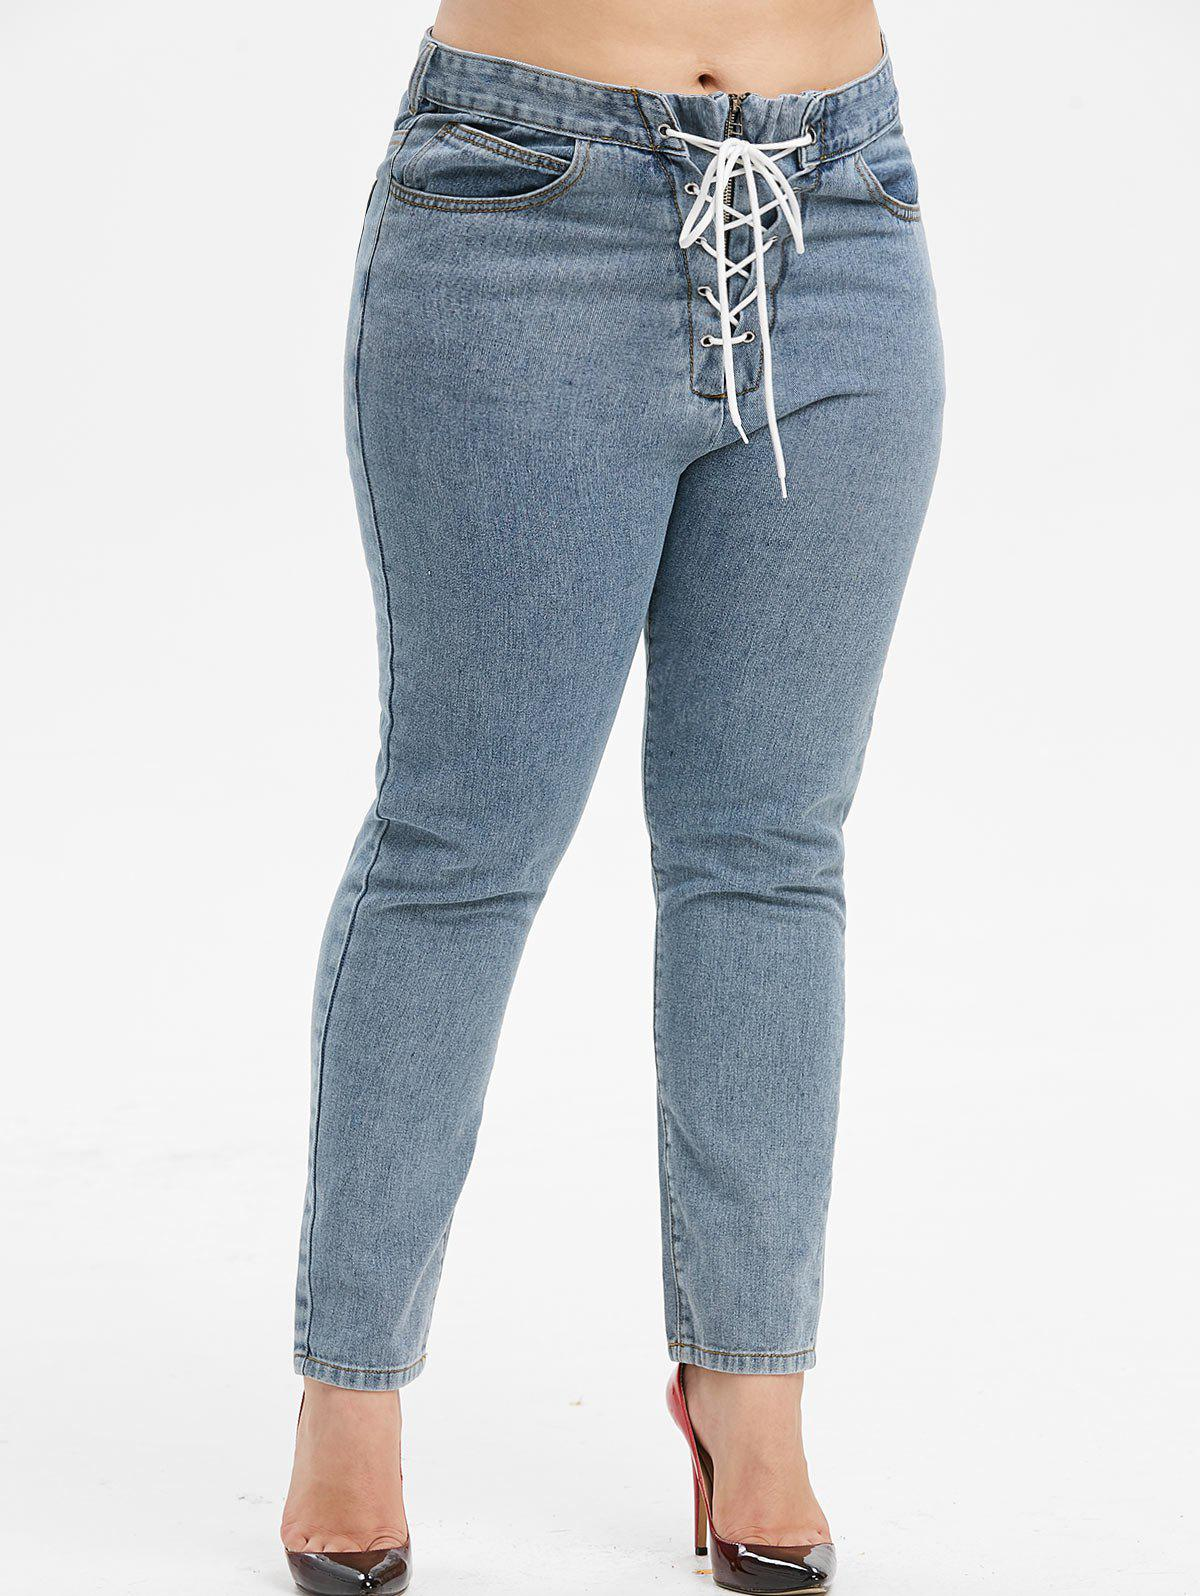 Plus Size High Rise Lace Up Jeans - MARBLE BLUE 5X